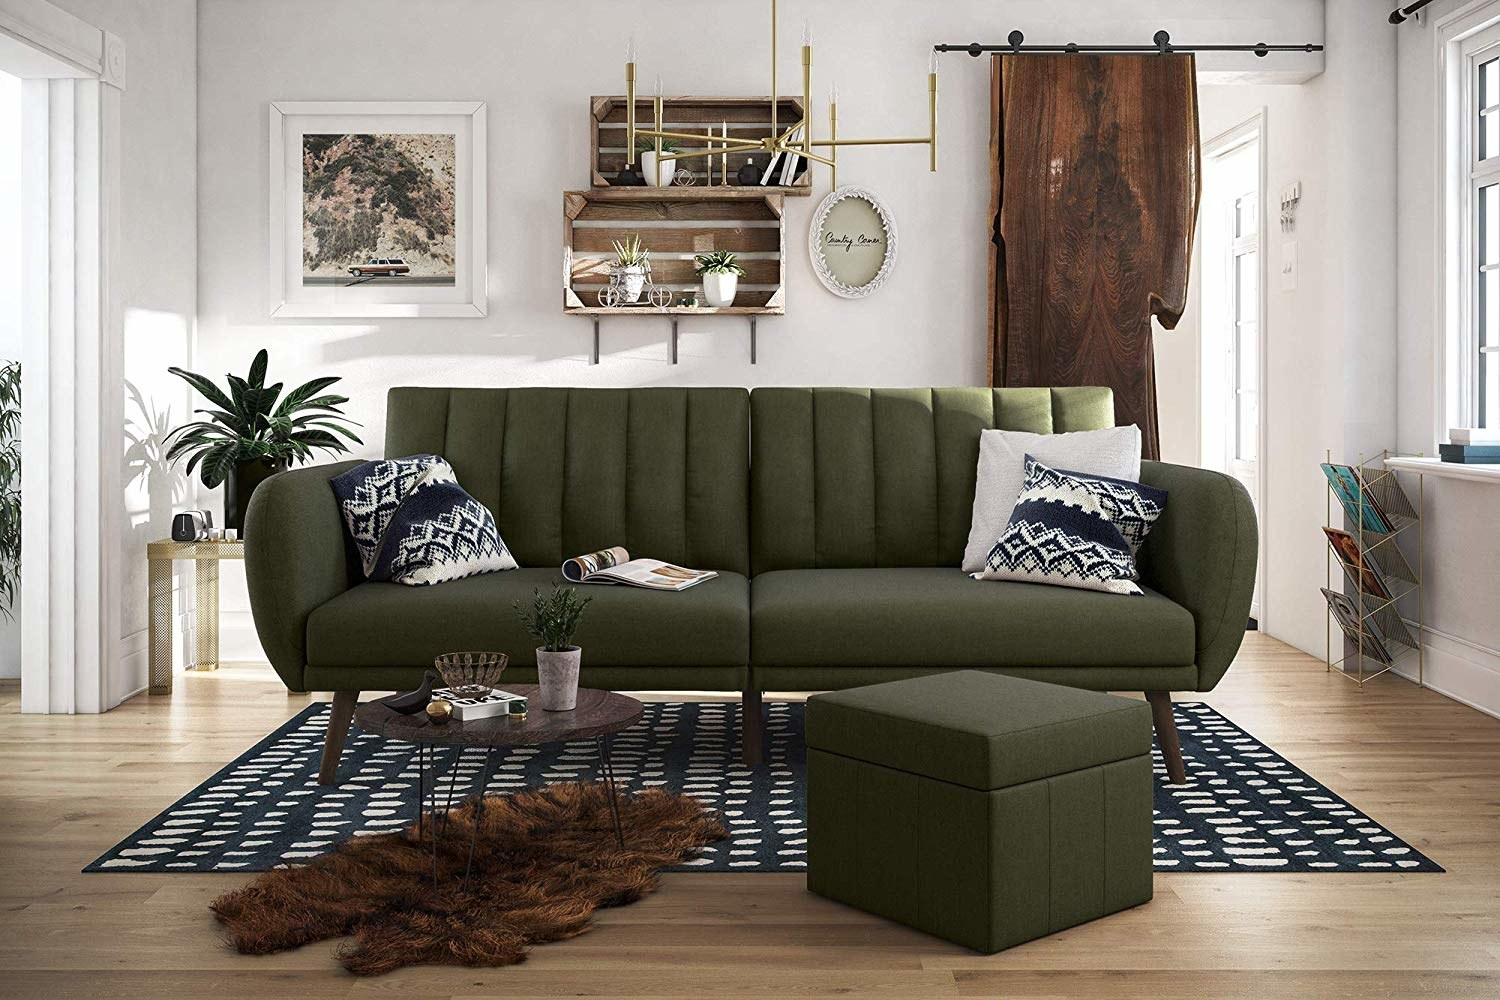 27 Pieces Of Furniture And Decor Thatll Give Your Living Room Some Life